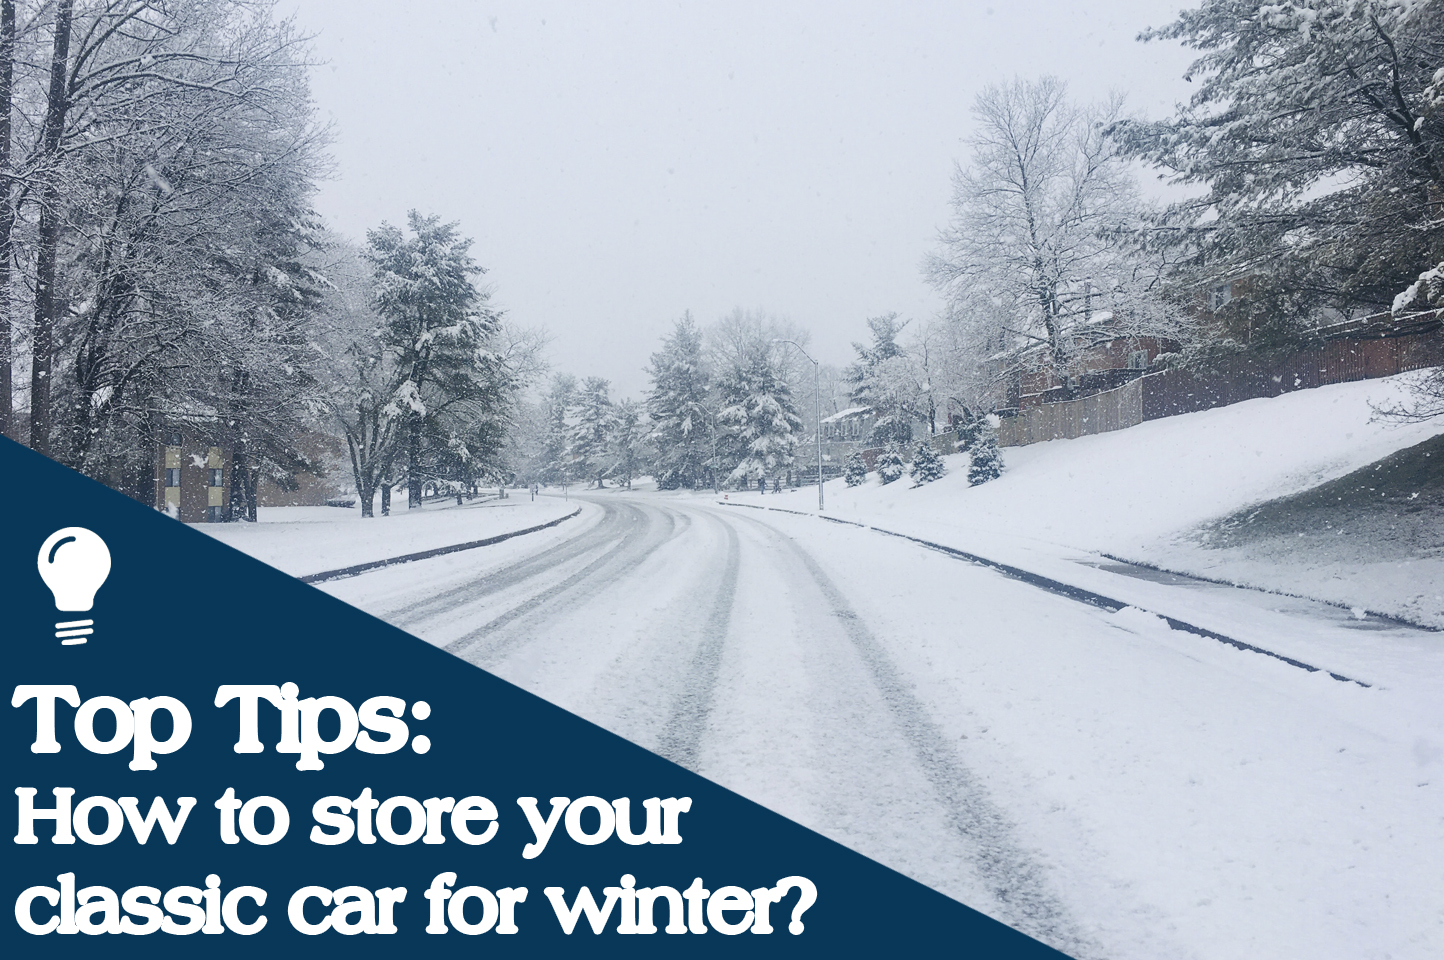 Top Tips: How to store your classic car for winter?